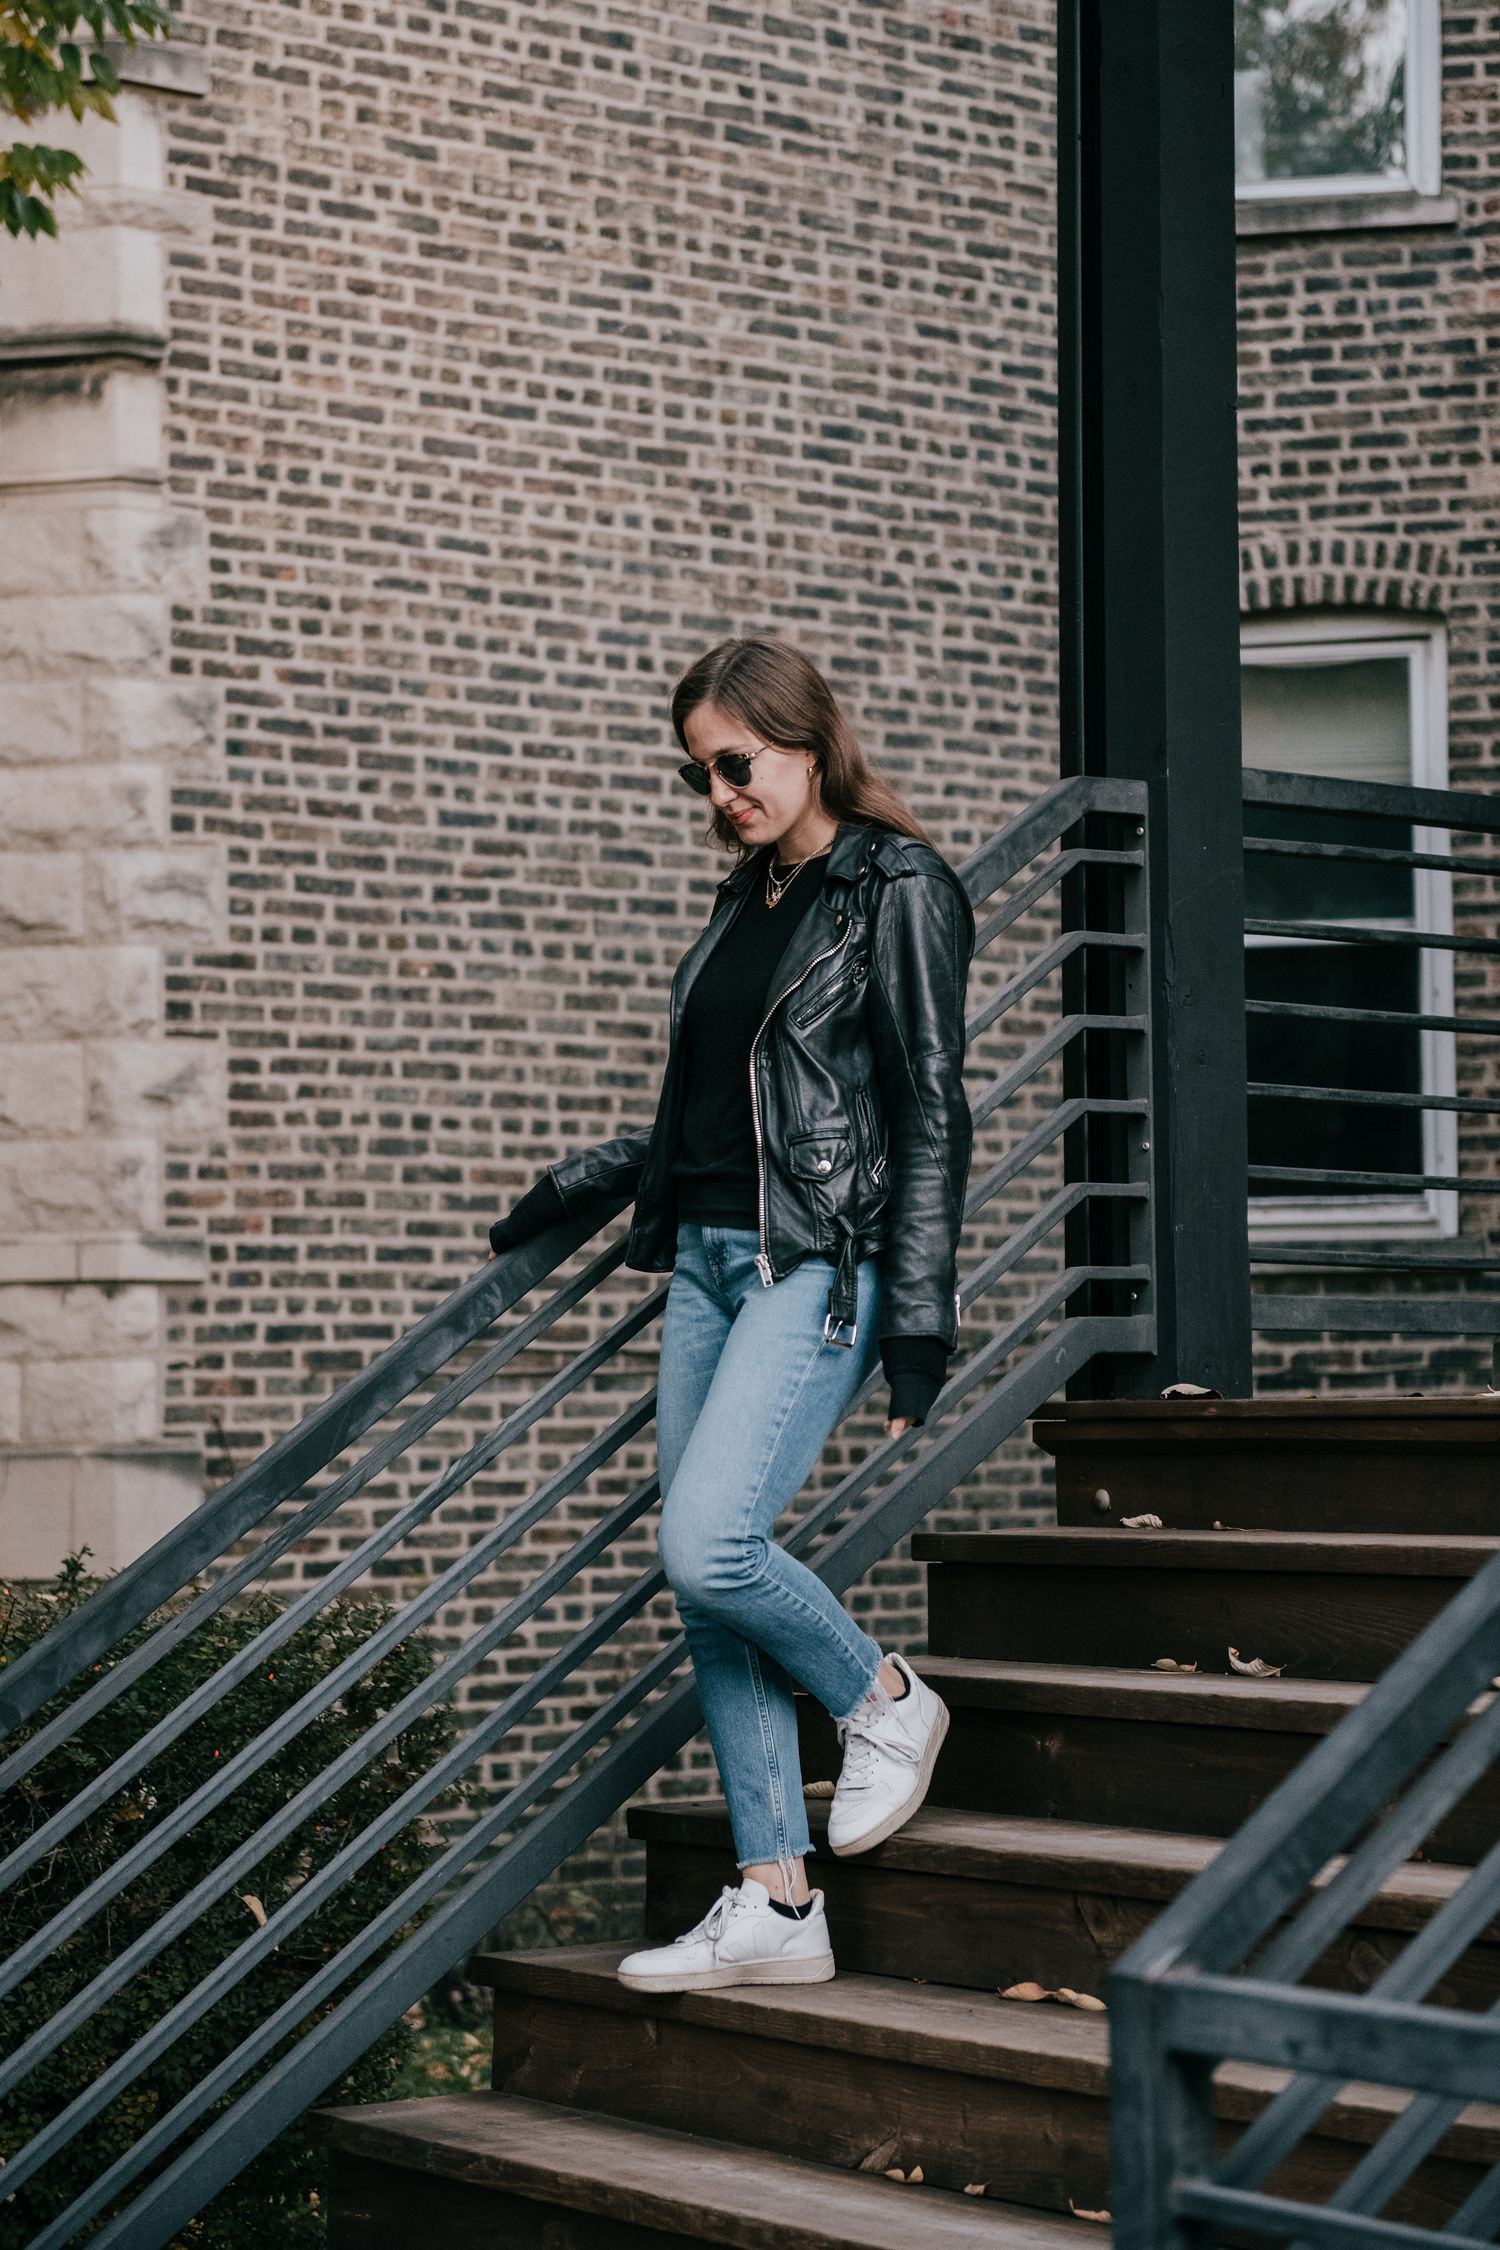 Leather jacket and Everlane denim jeans - A Week Of Ethical Outfits With Heart With Carly Gerber From Hippie + Heart on The Good Trade